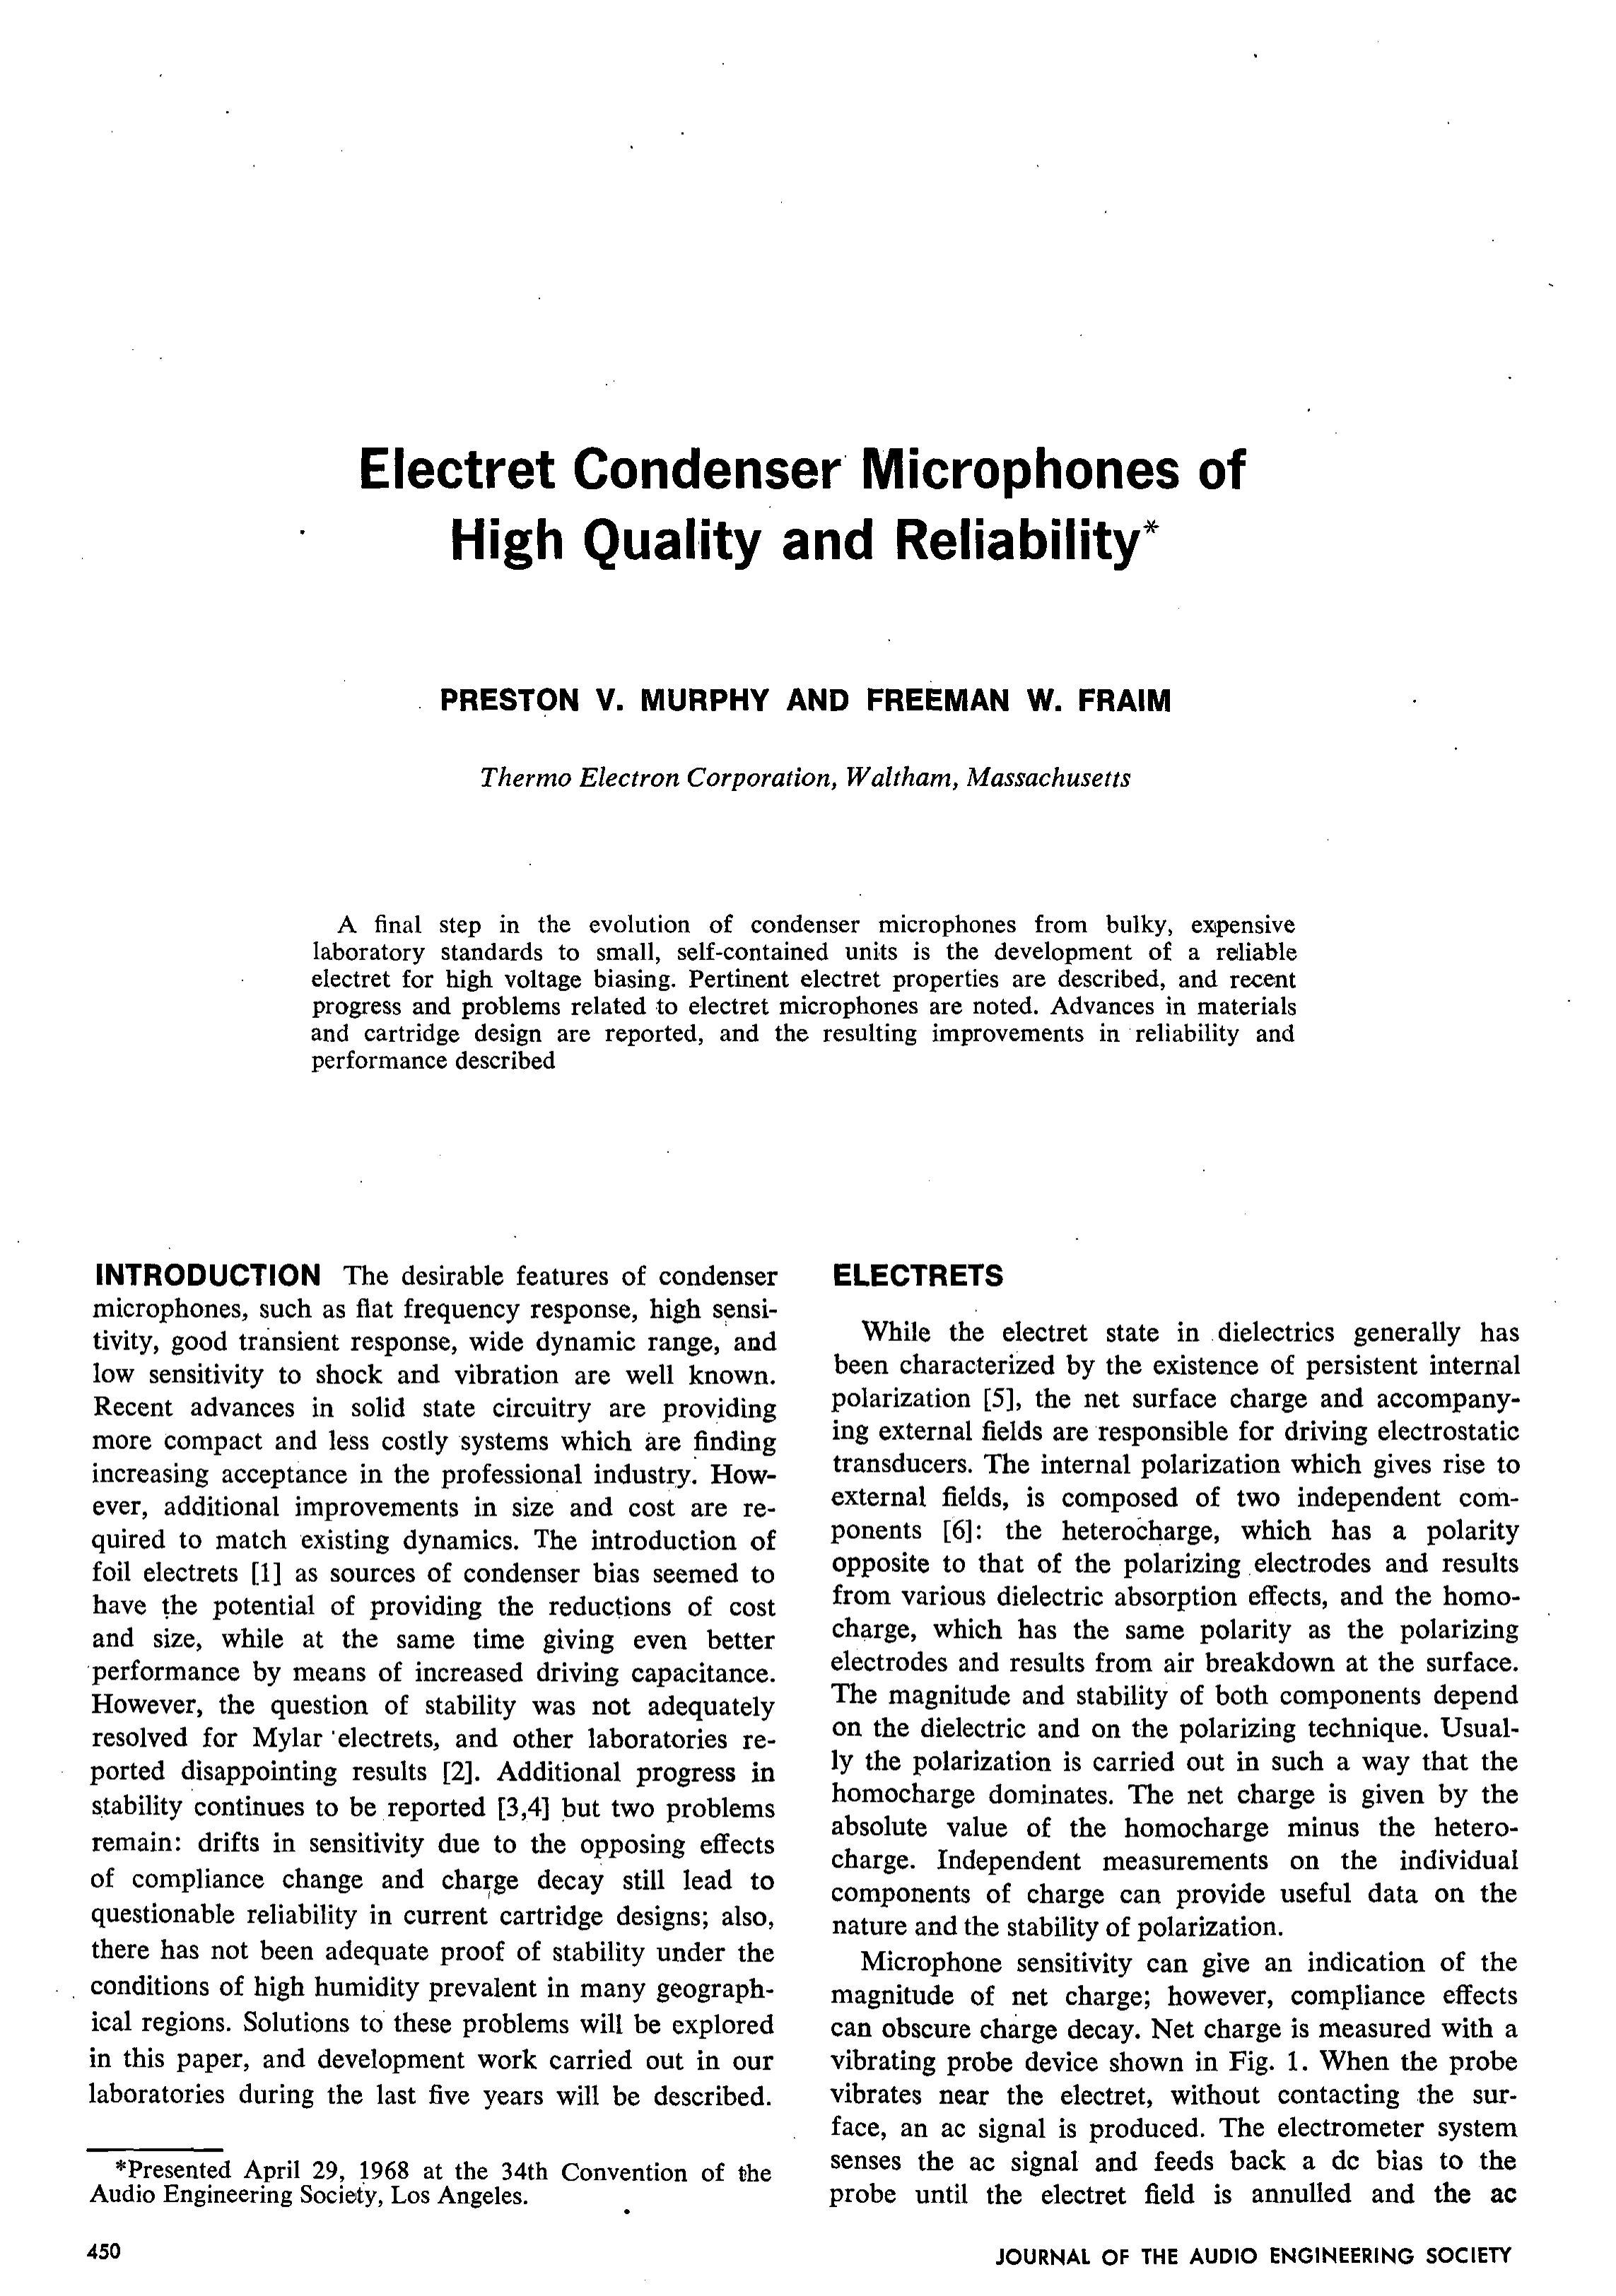 AES E Library Electret Condenser Microphones of High Quality and